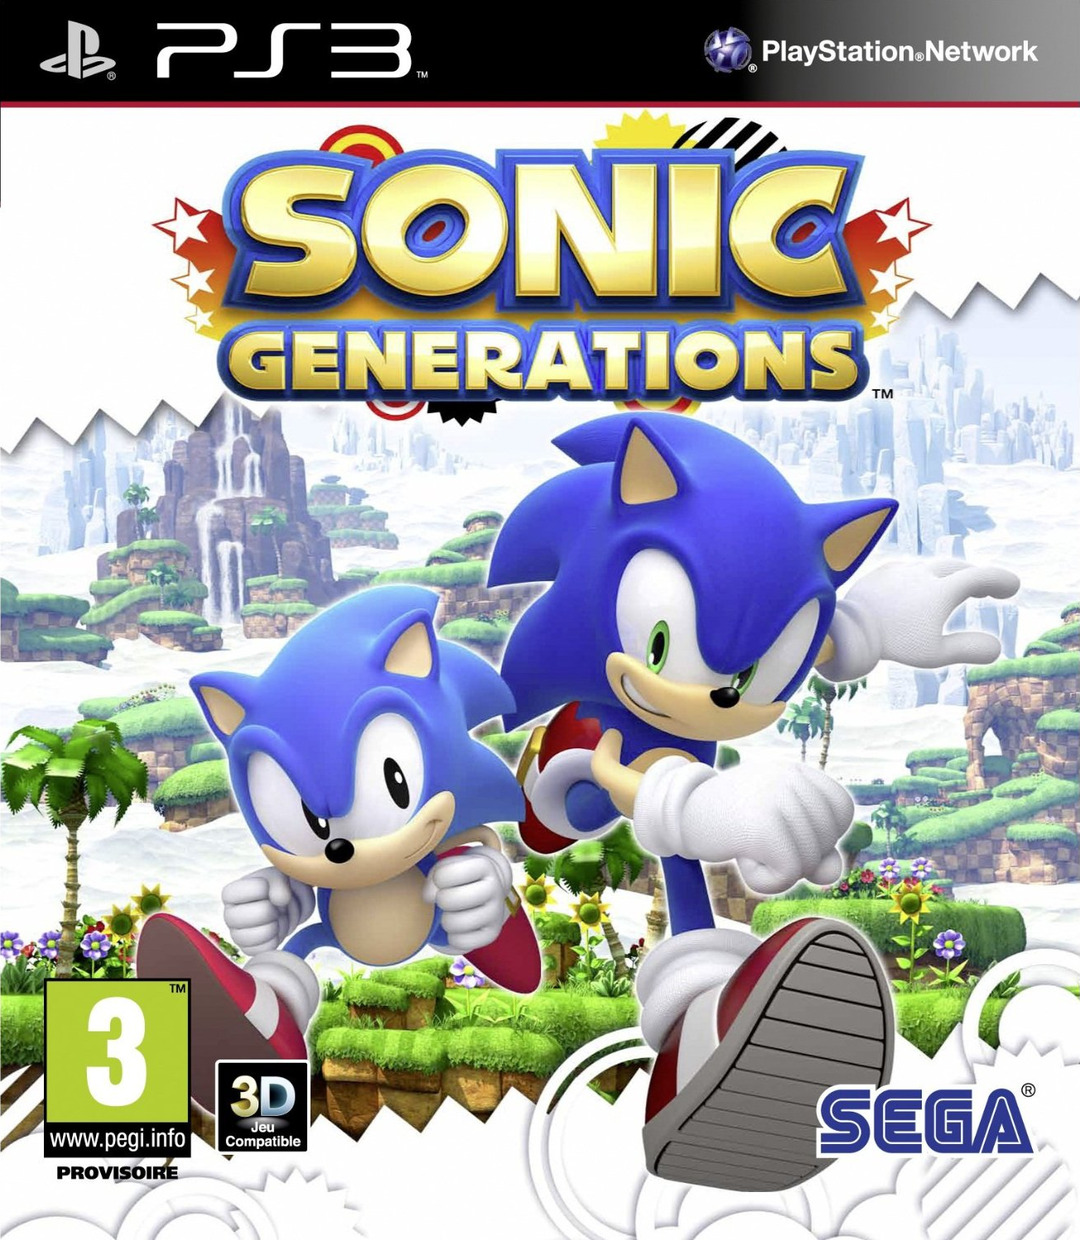 Sonic Games For Ps3 : Game sonic generation images ps hd